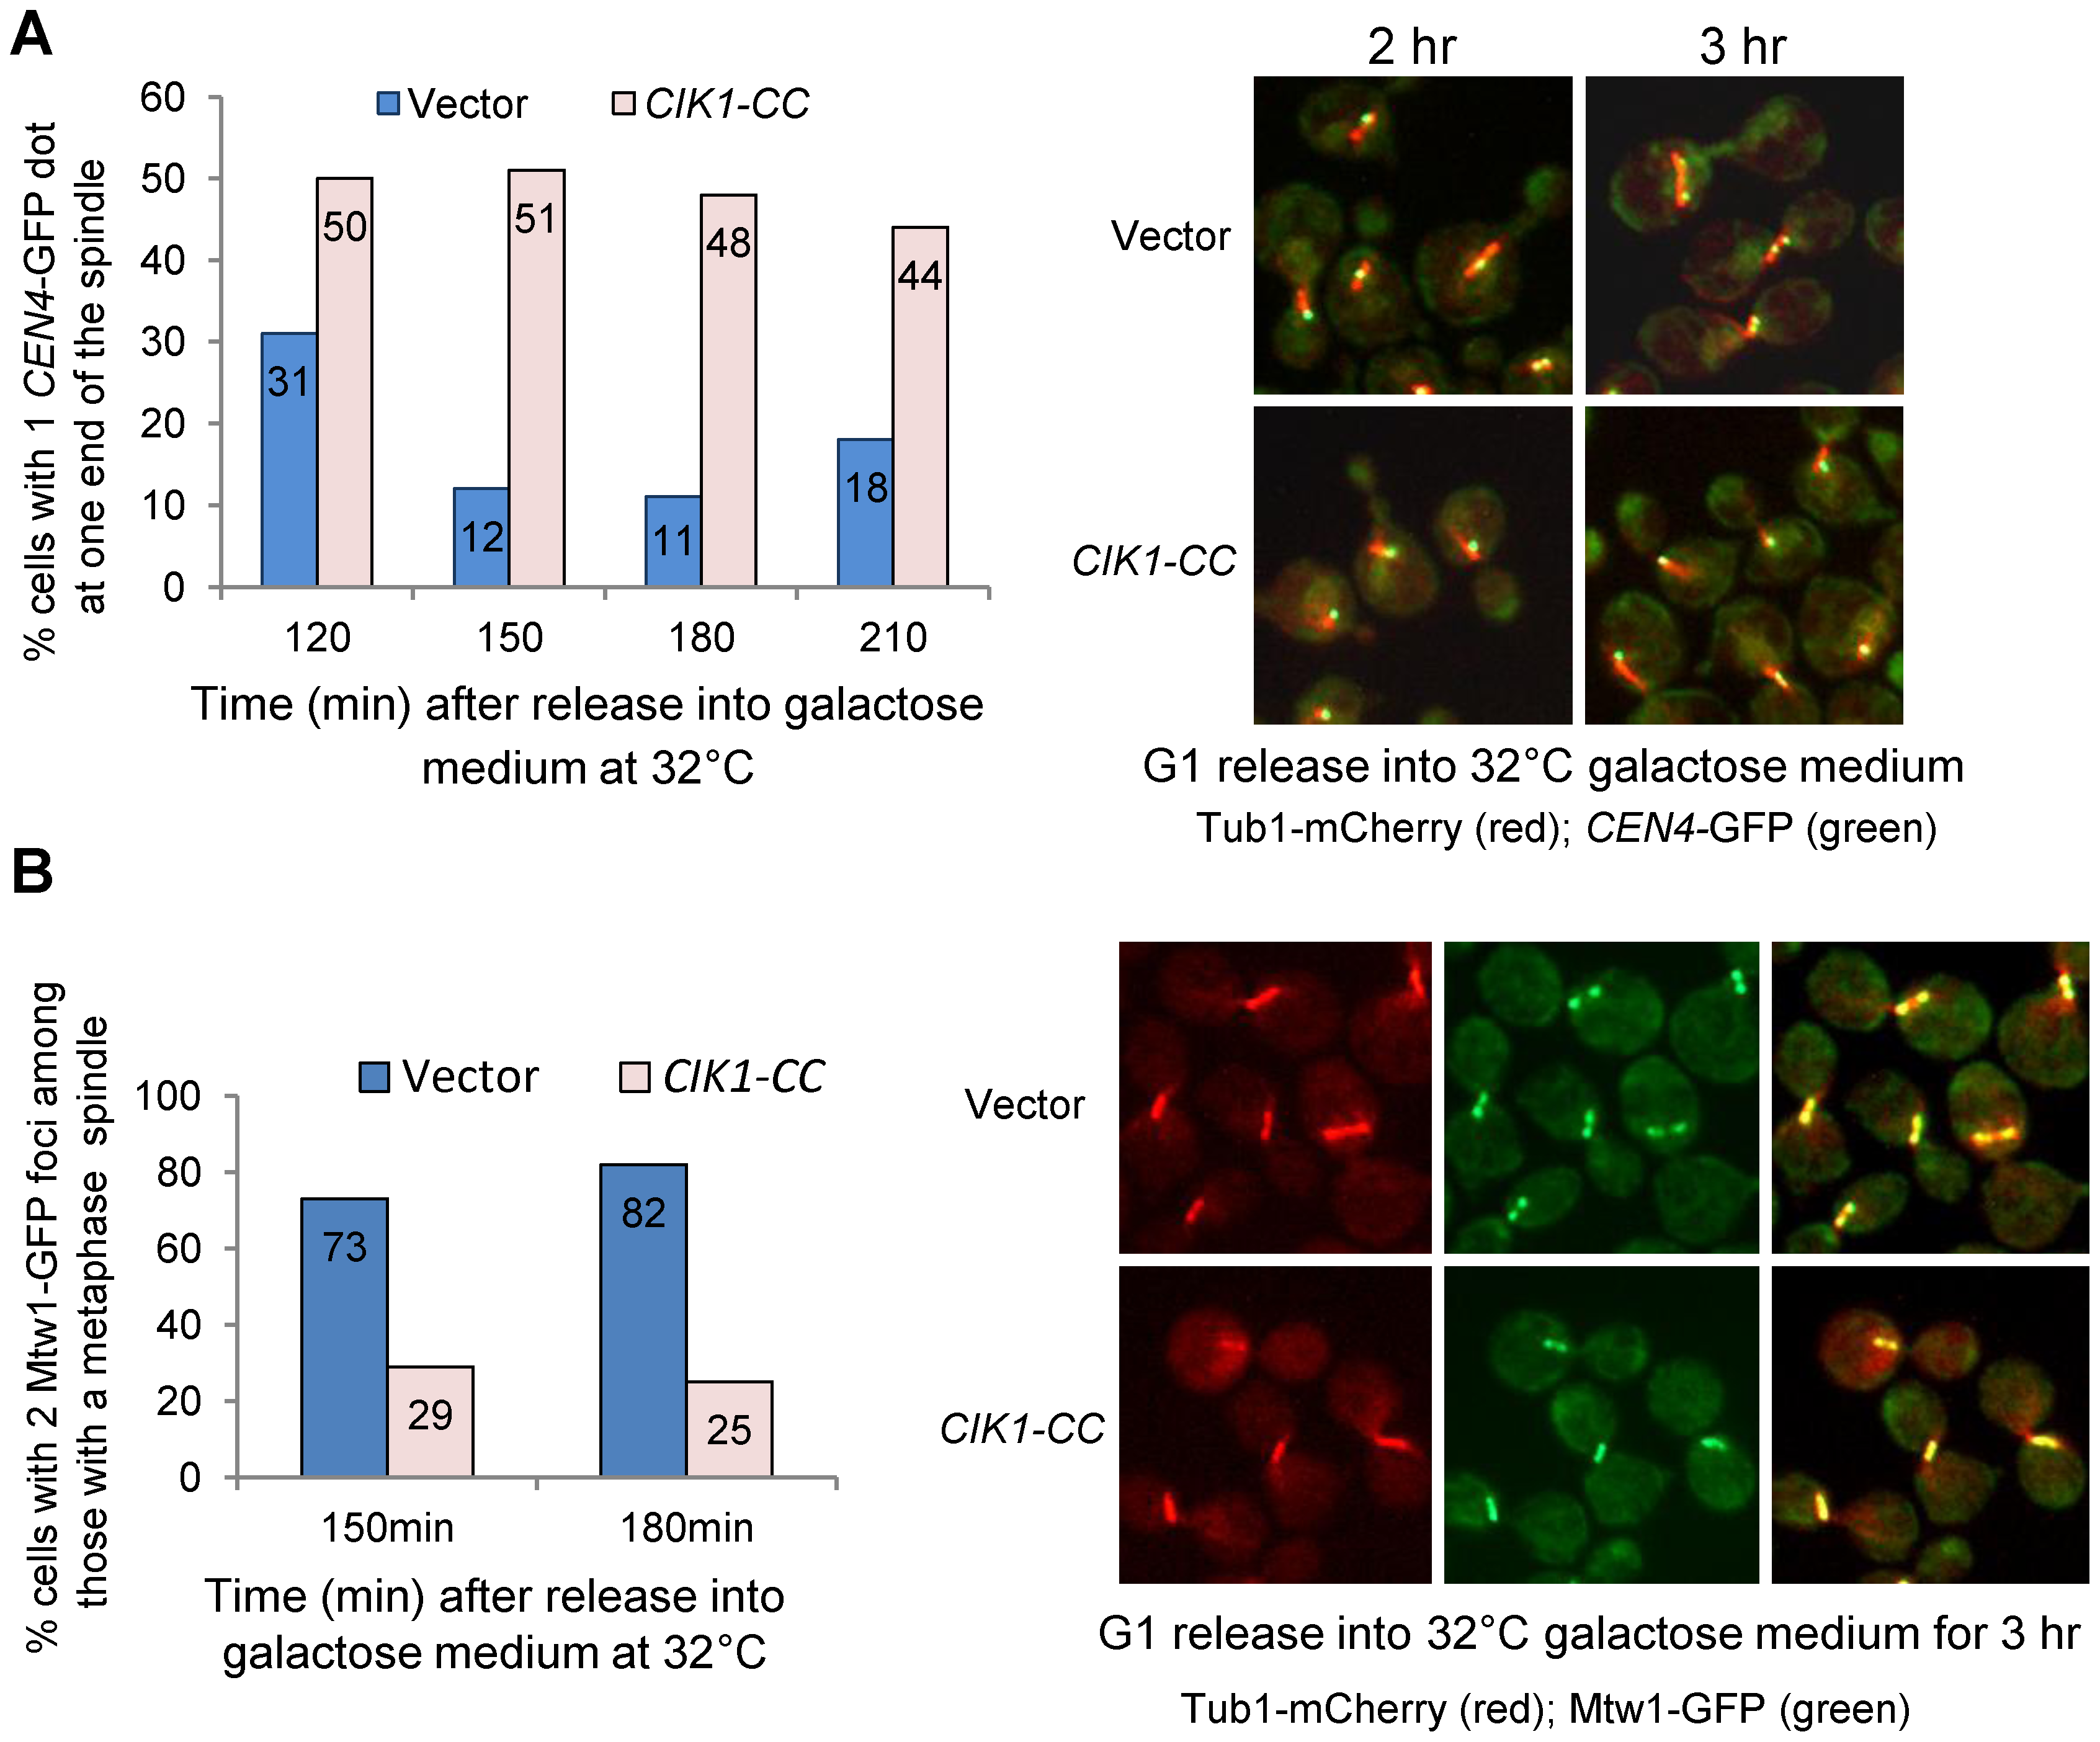 Overexpression of <i>CIK1-CC</i> leads to defects in chromosome bipolar attachment.